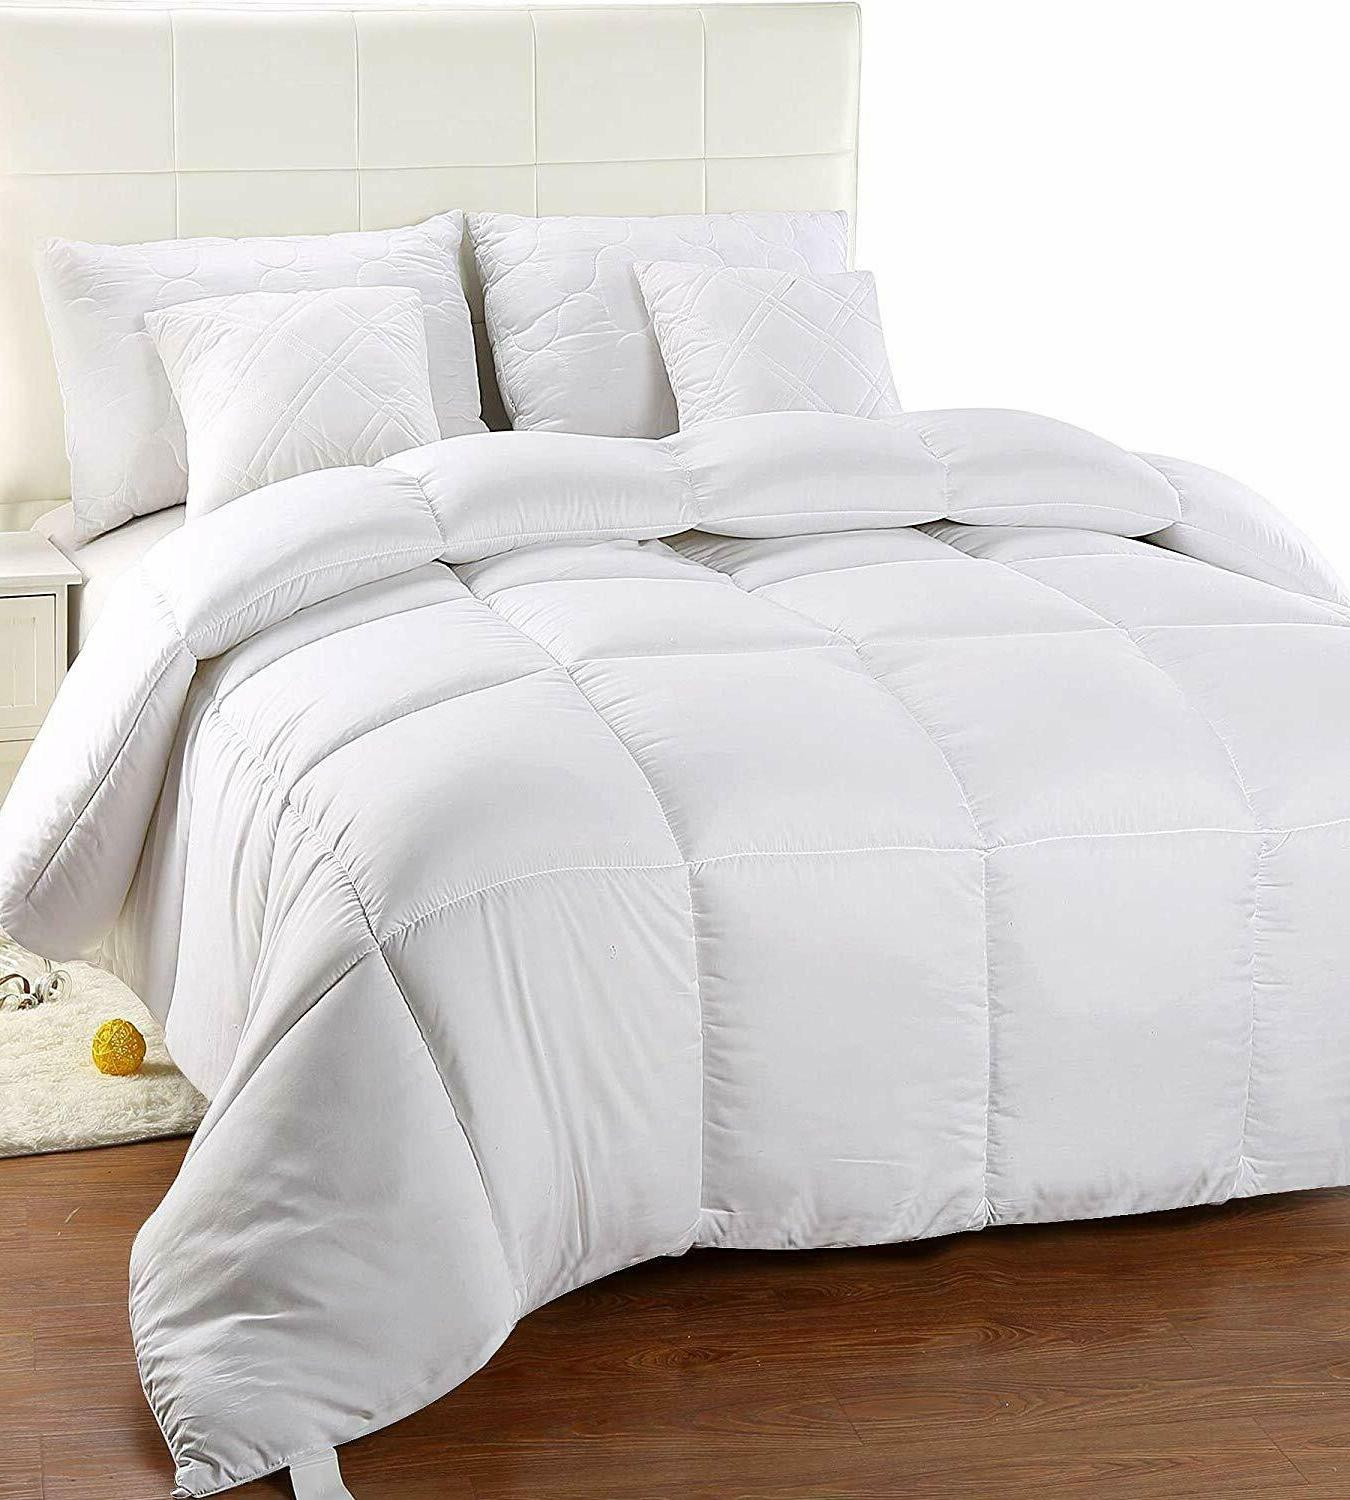 Comforter Insert White Quilted Down Alternative Design Lot